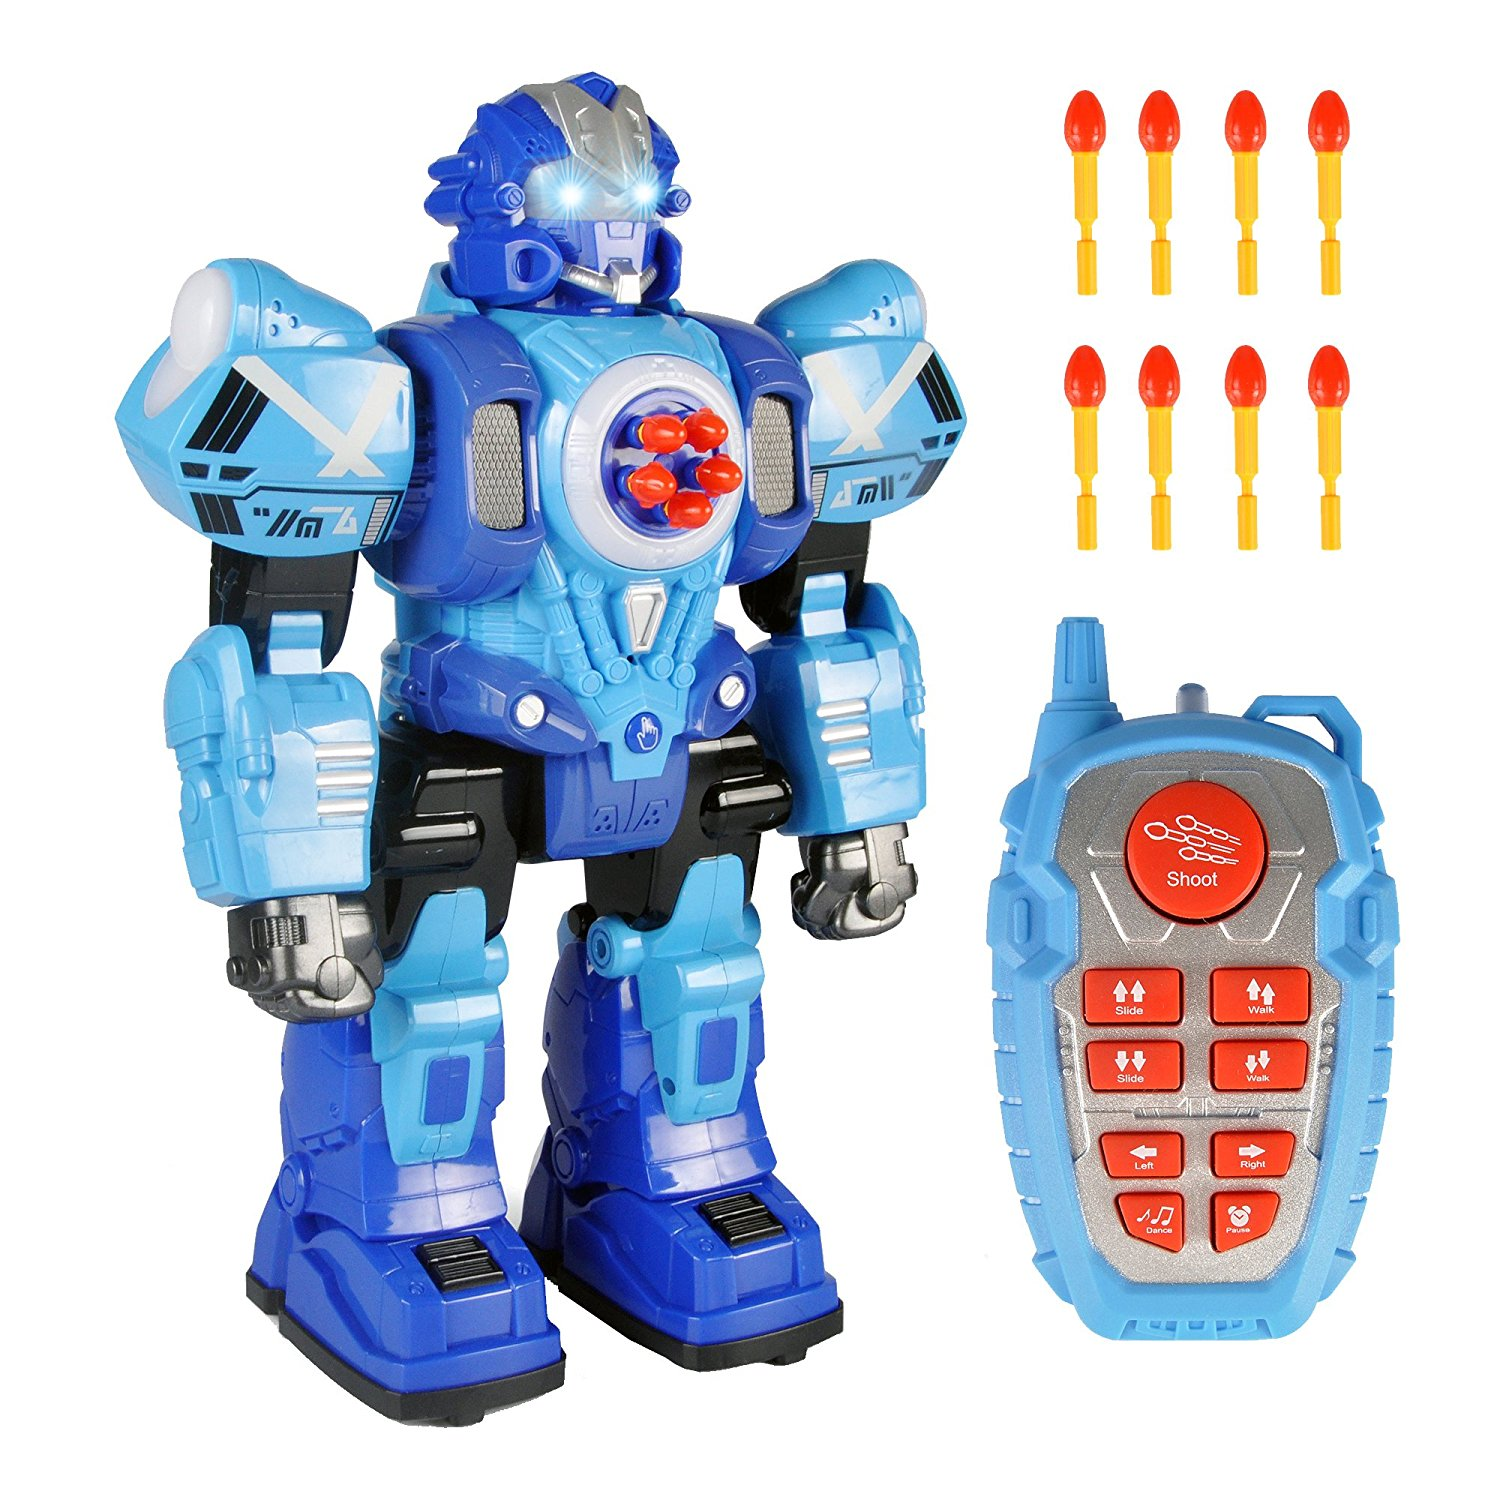 Toys For Robots : Us large remote control robot toy for kids rc